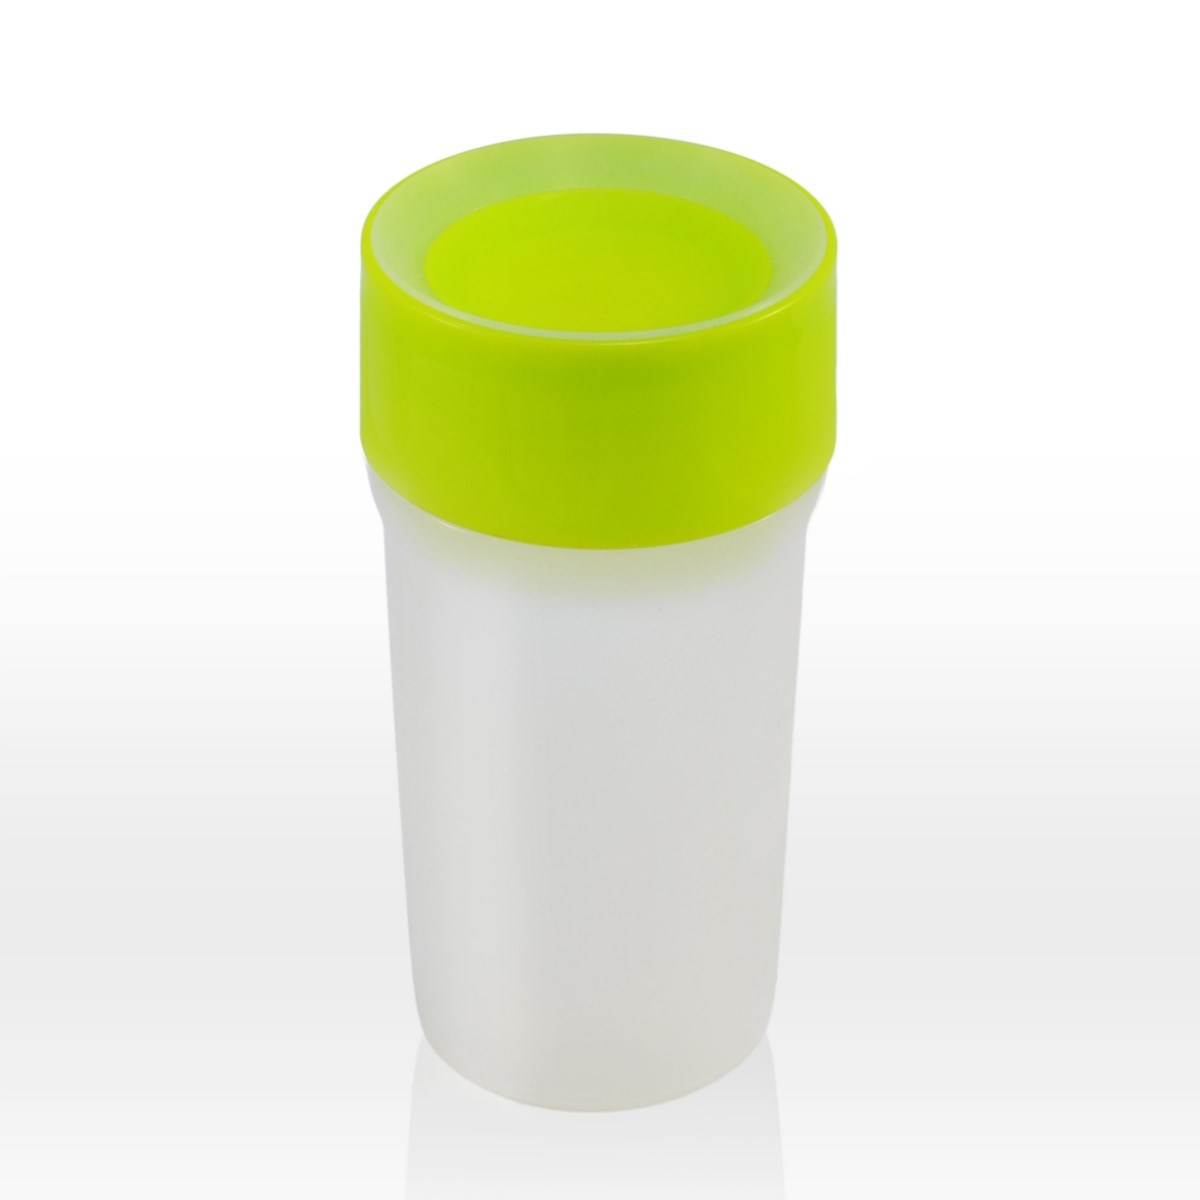 litecup - sippy cup & nightlight, neon green